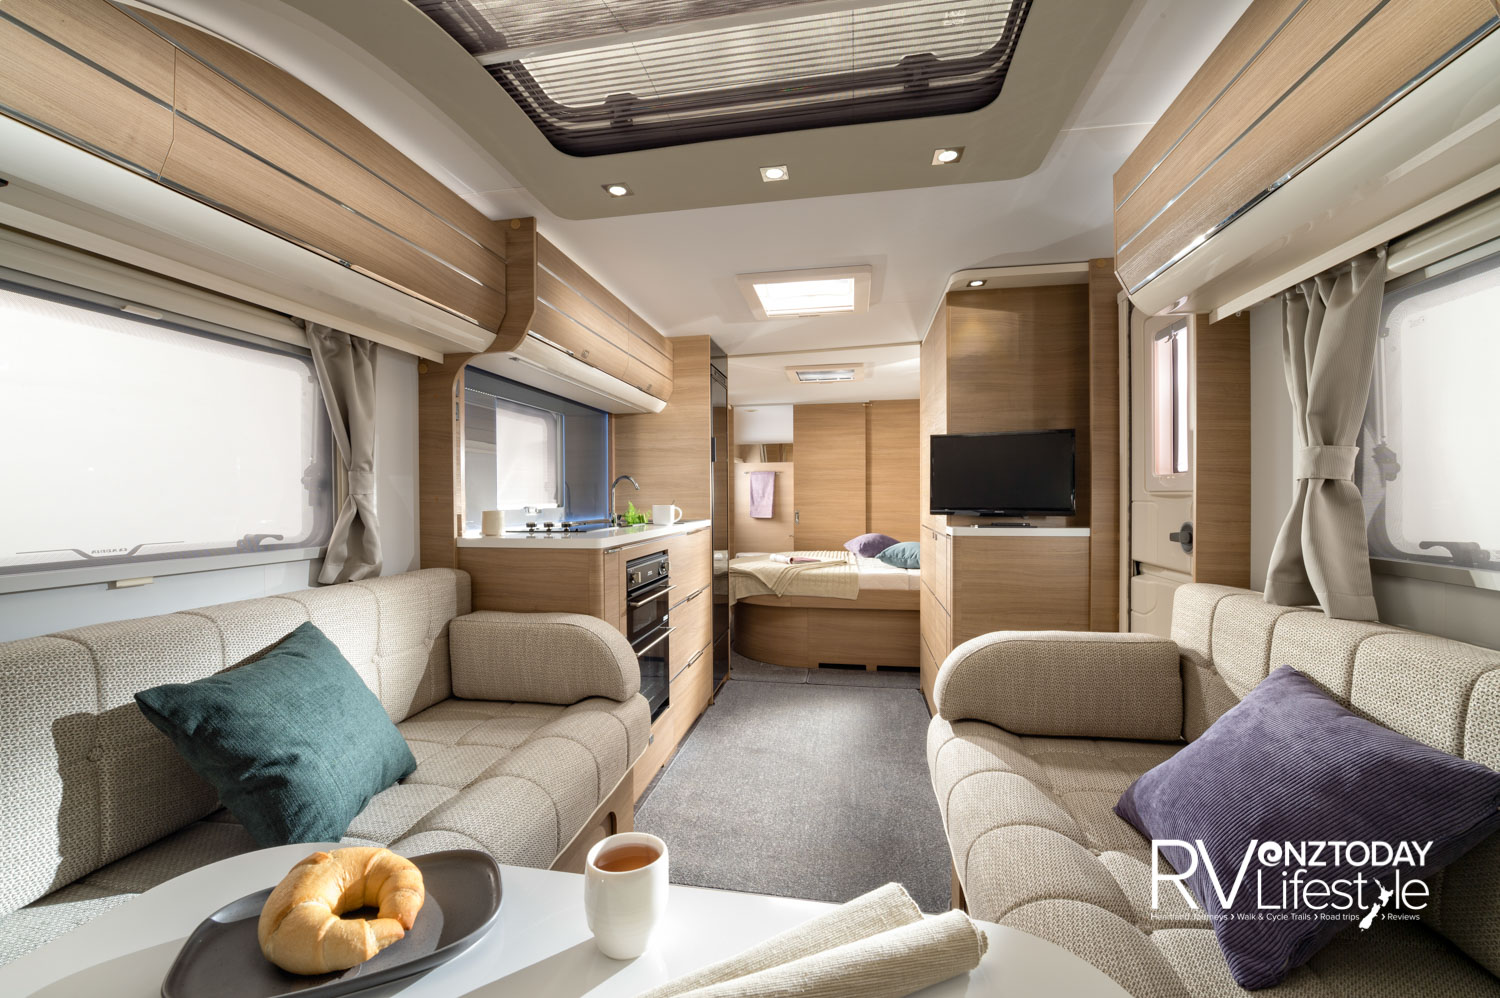 The extra width on these caravans shows right here – check out the walkway space – this is an important aspect for enclosed spaces, making them feel light and not closed in